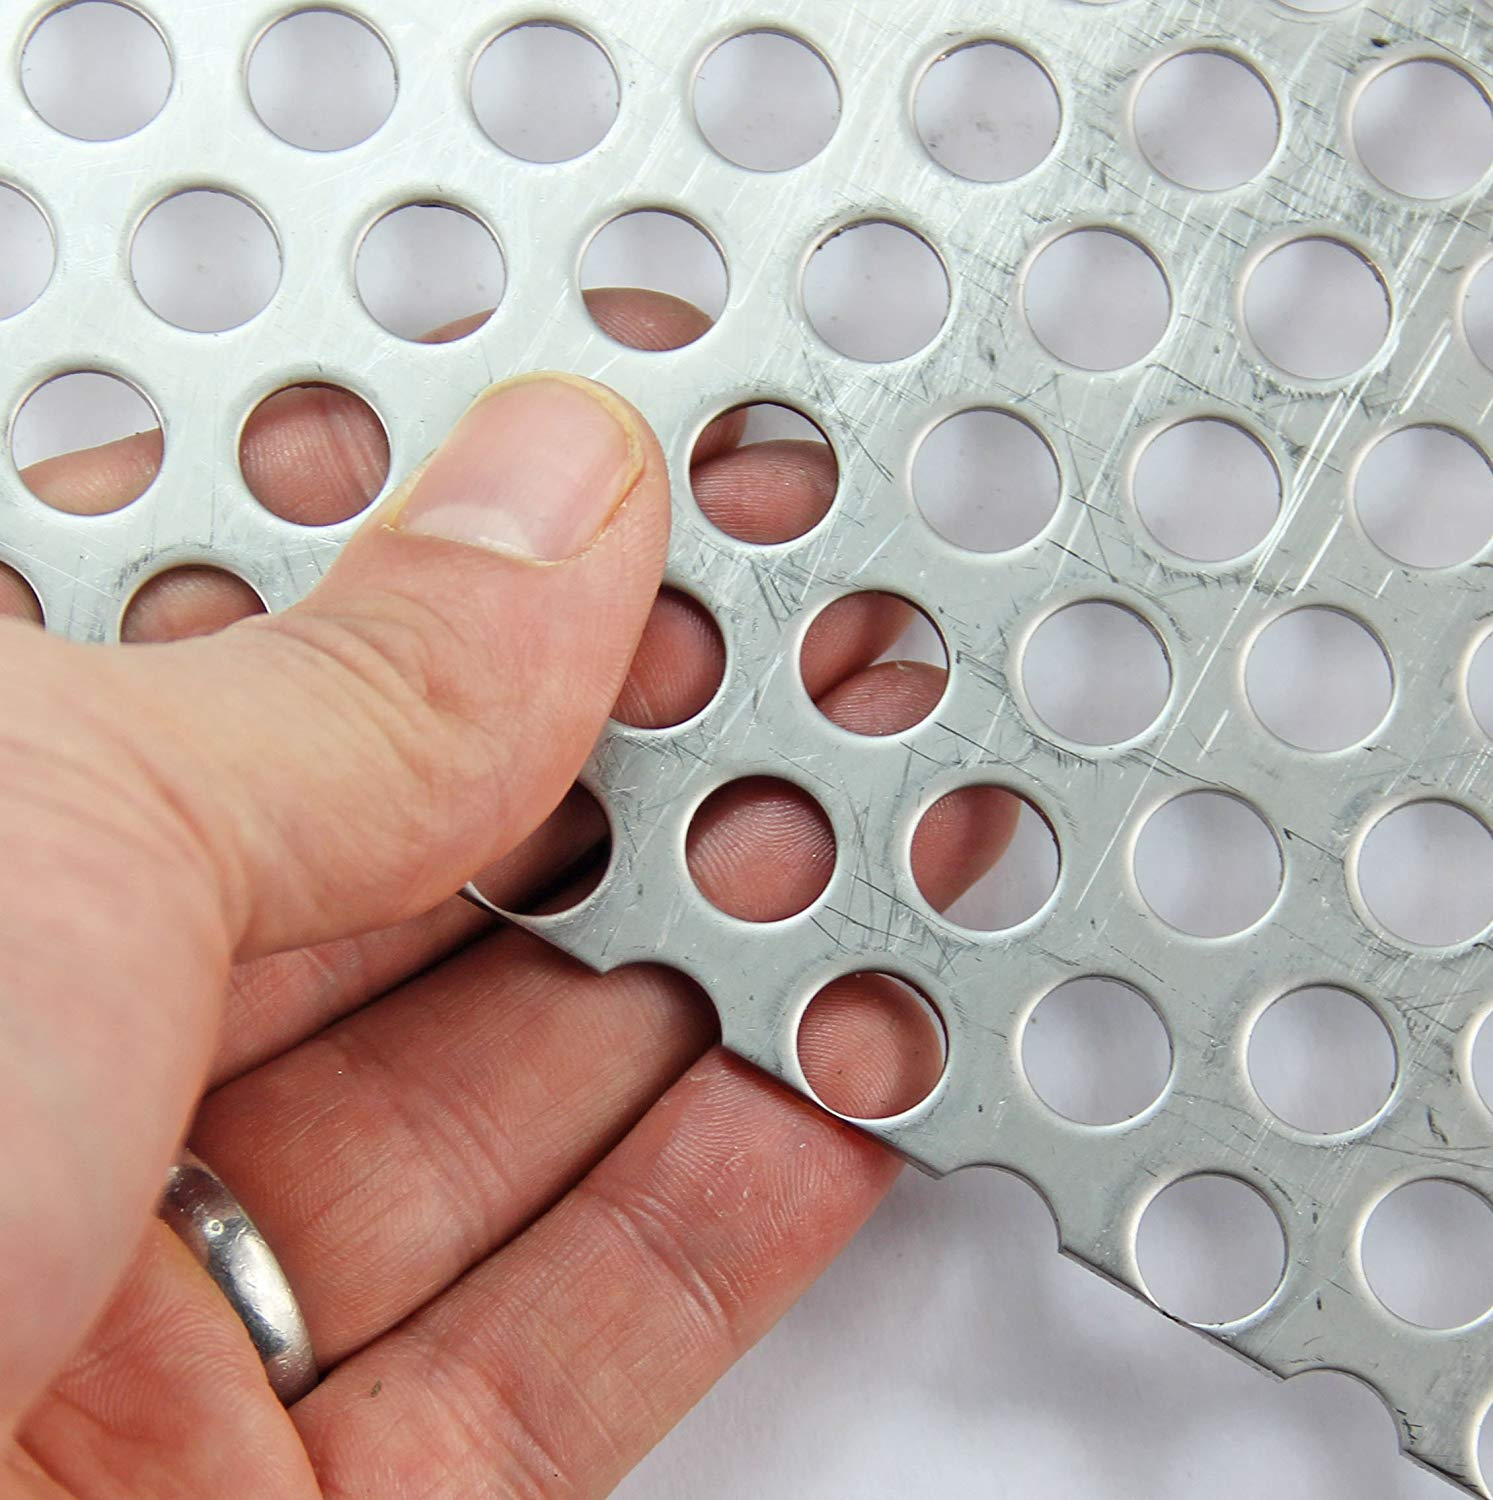 10mm Hole-15mm Pitch-2mm Thickness A3 Sheet 300 x 420mm Sheet Aluminium-Perforated Mesh Sheet-